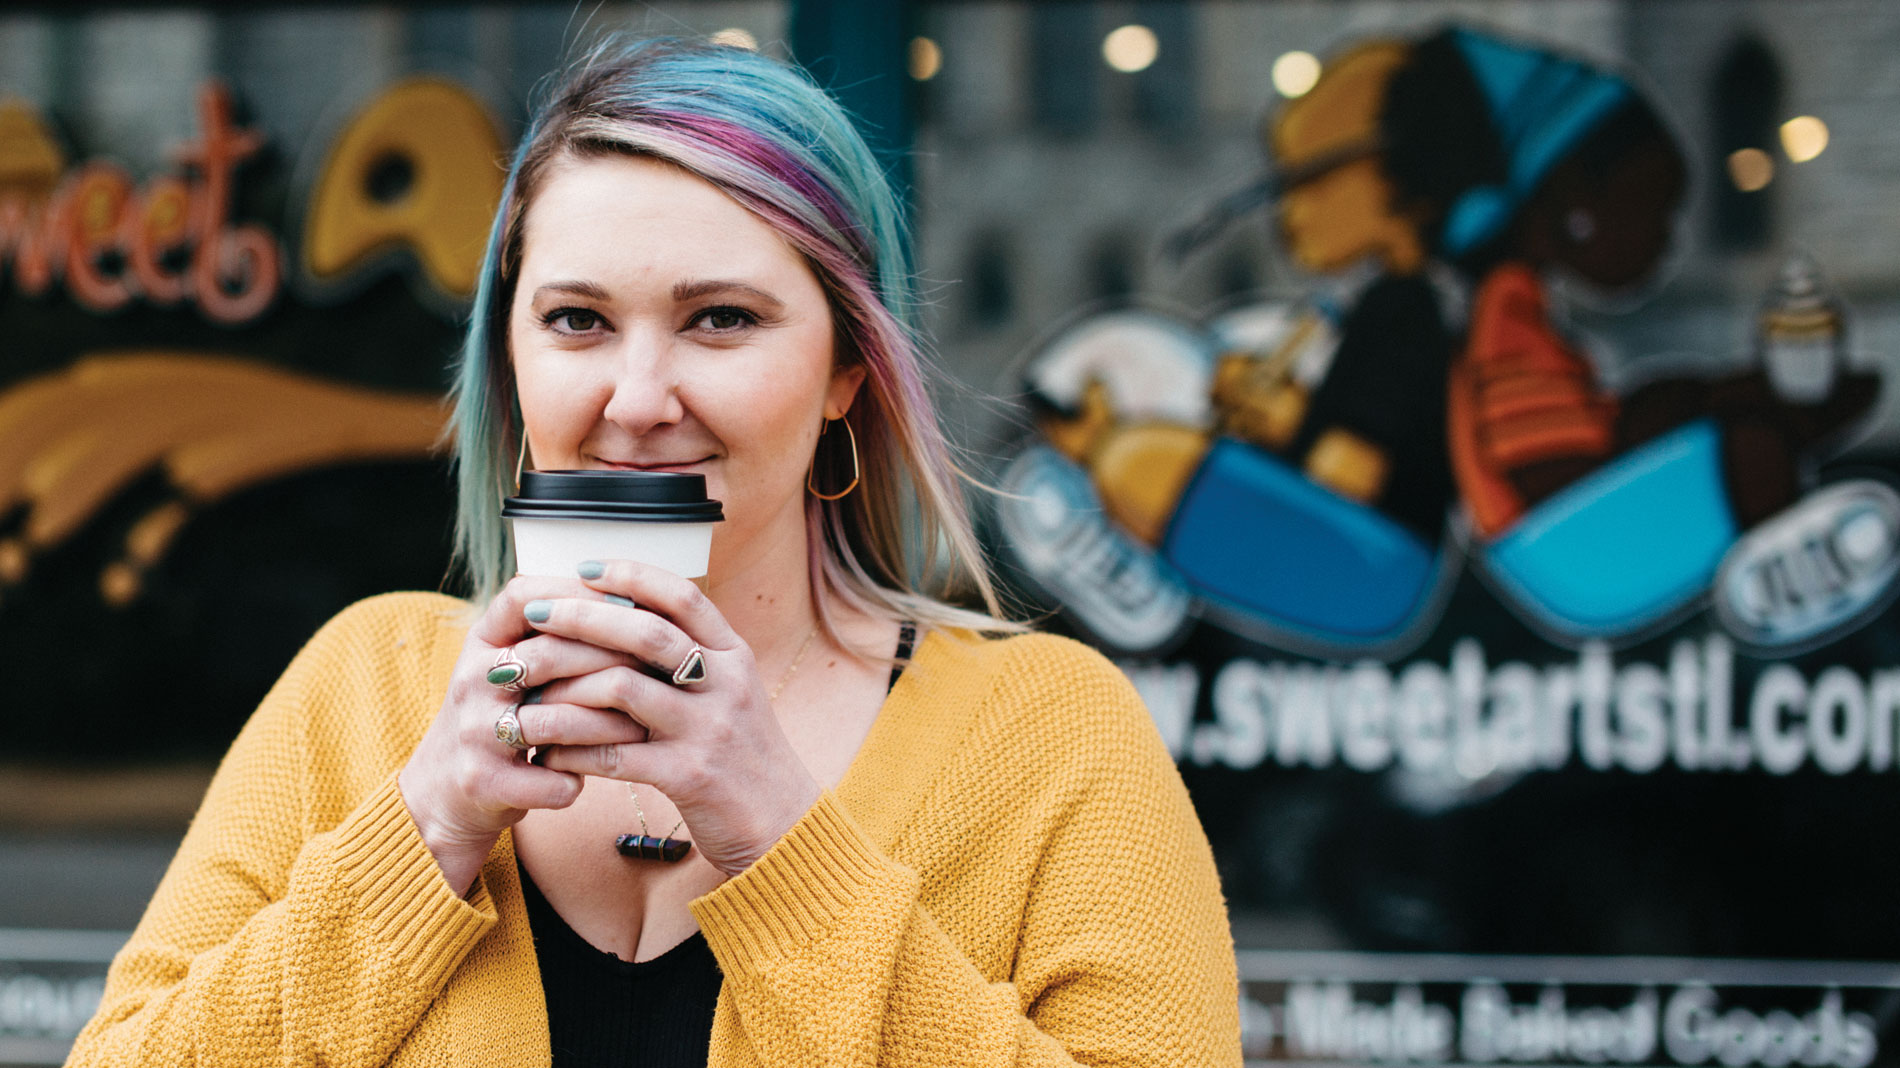 a woman with multicolored hair and a yellow sweater holding a cup of coffee outside sweetart bakery